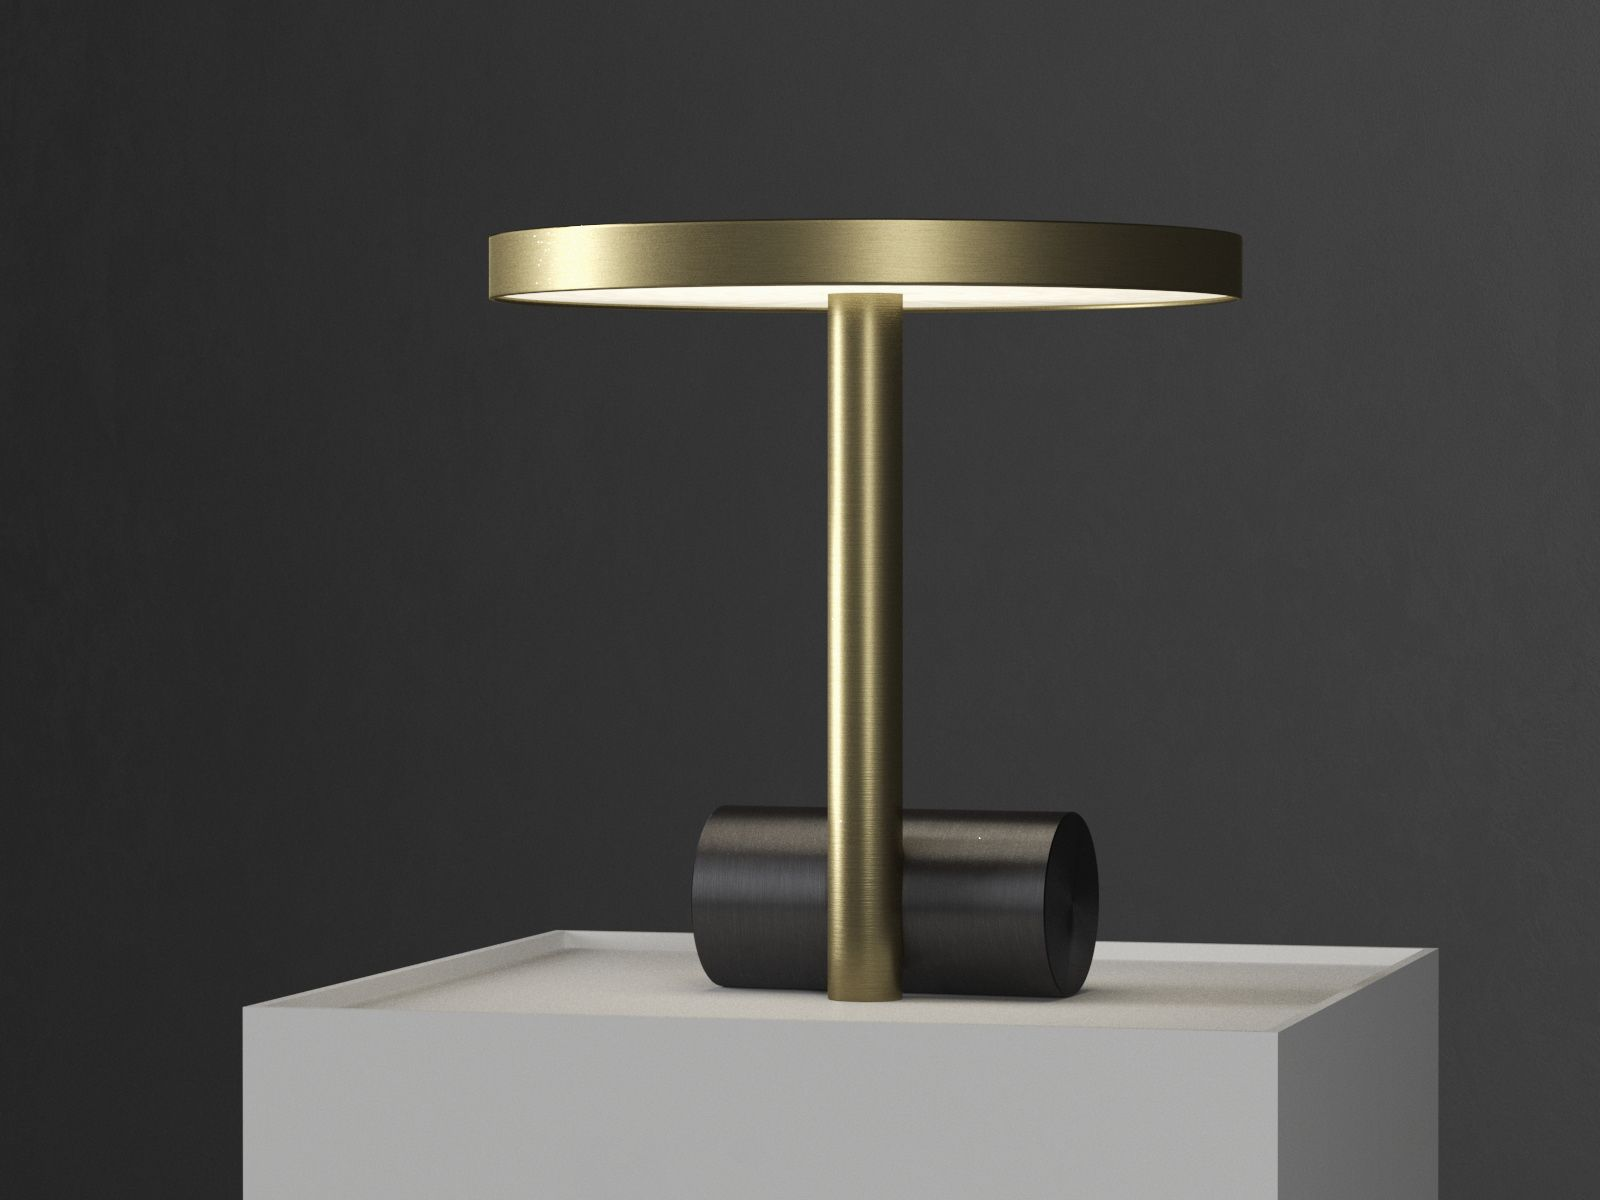 Free 3d Model Calee Table Lamp By South Hill Home On Behance Table Lamp Lamp Table Lamp Lighting